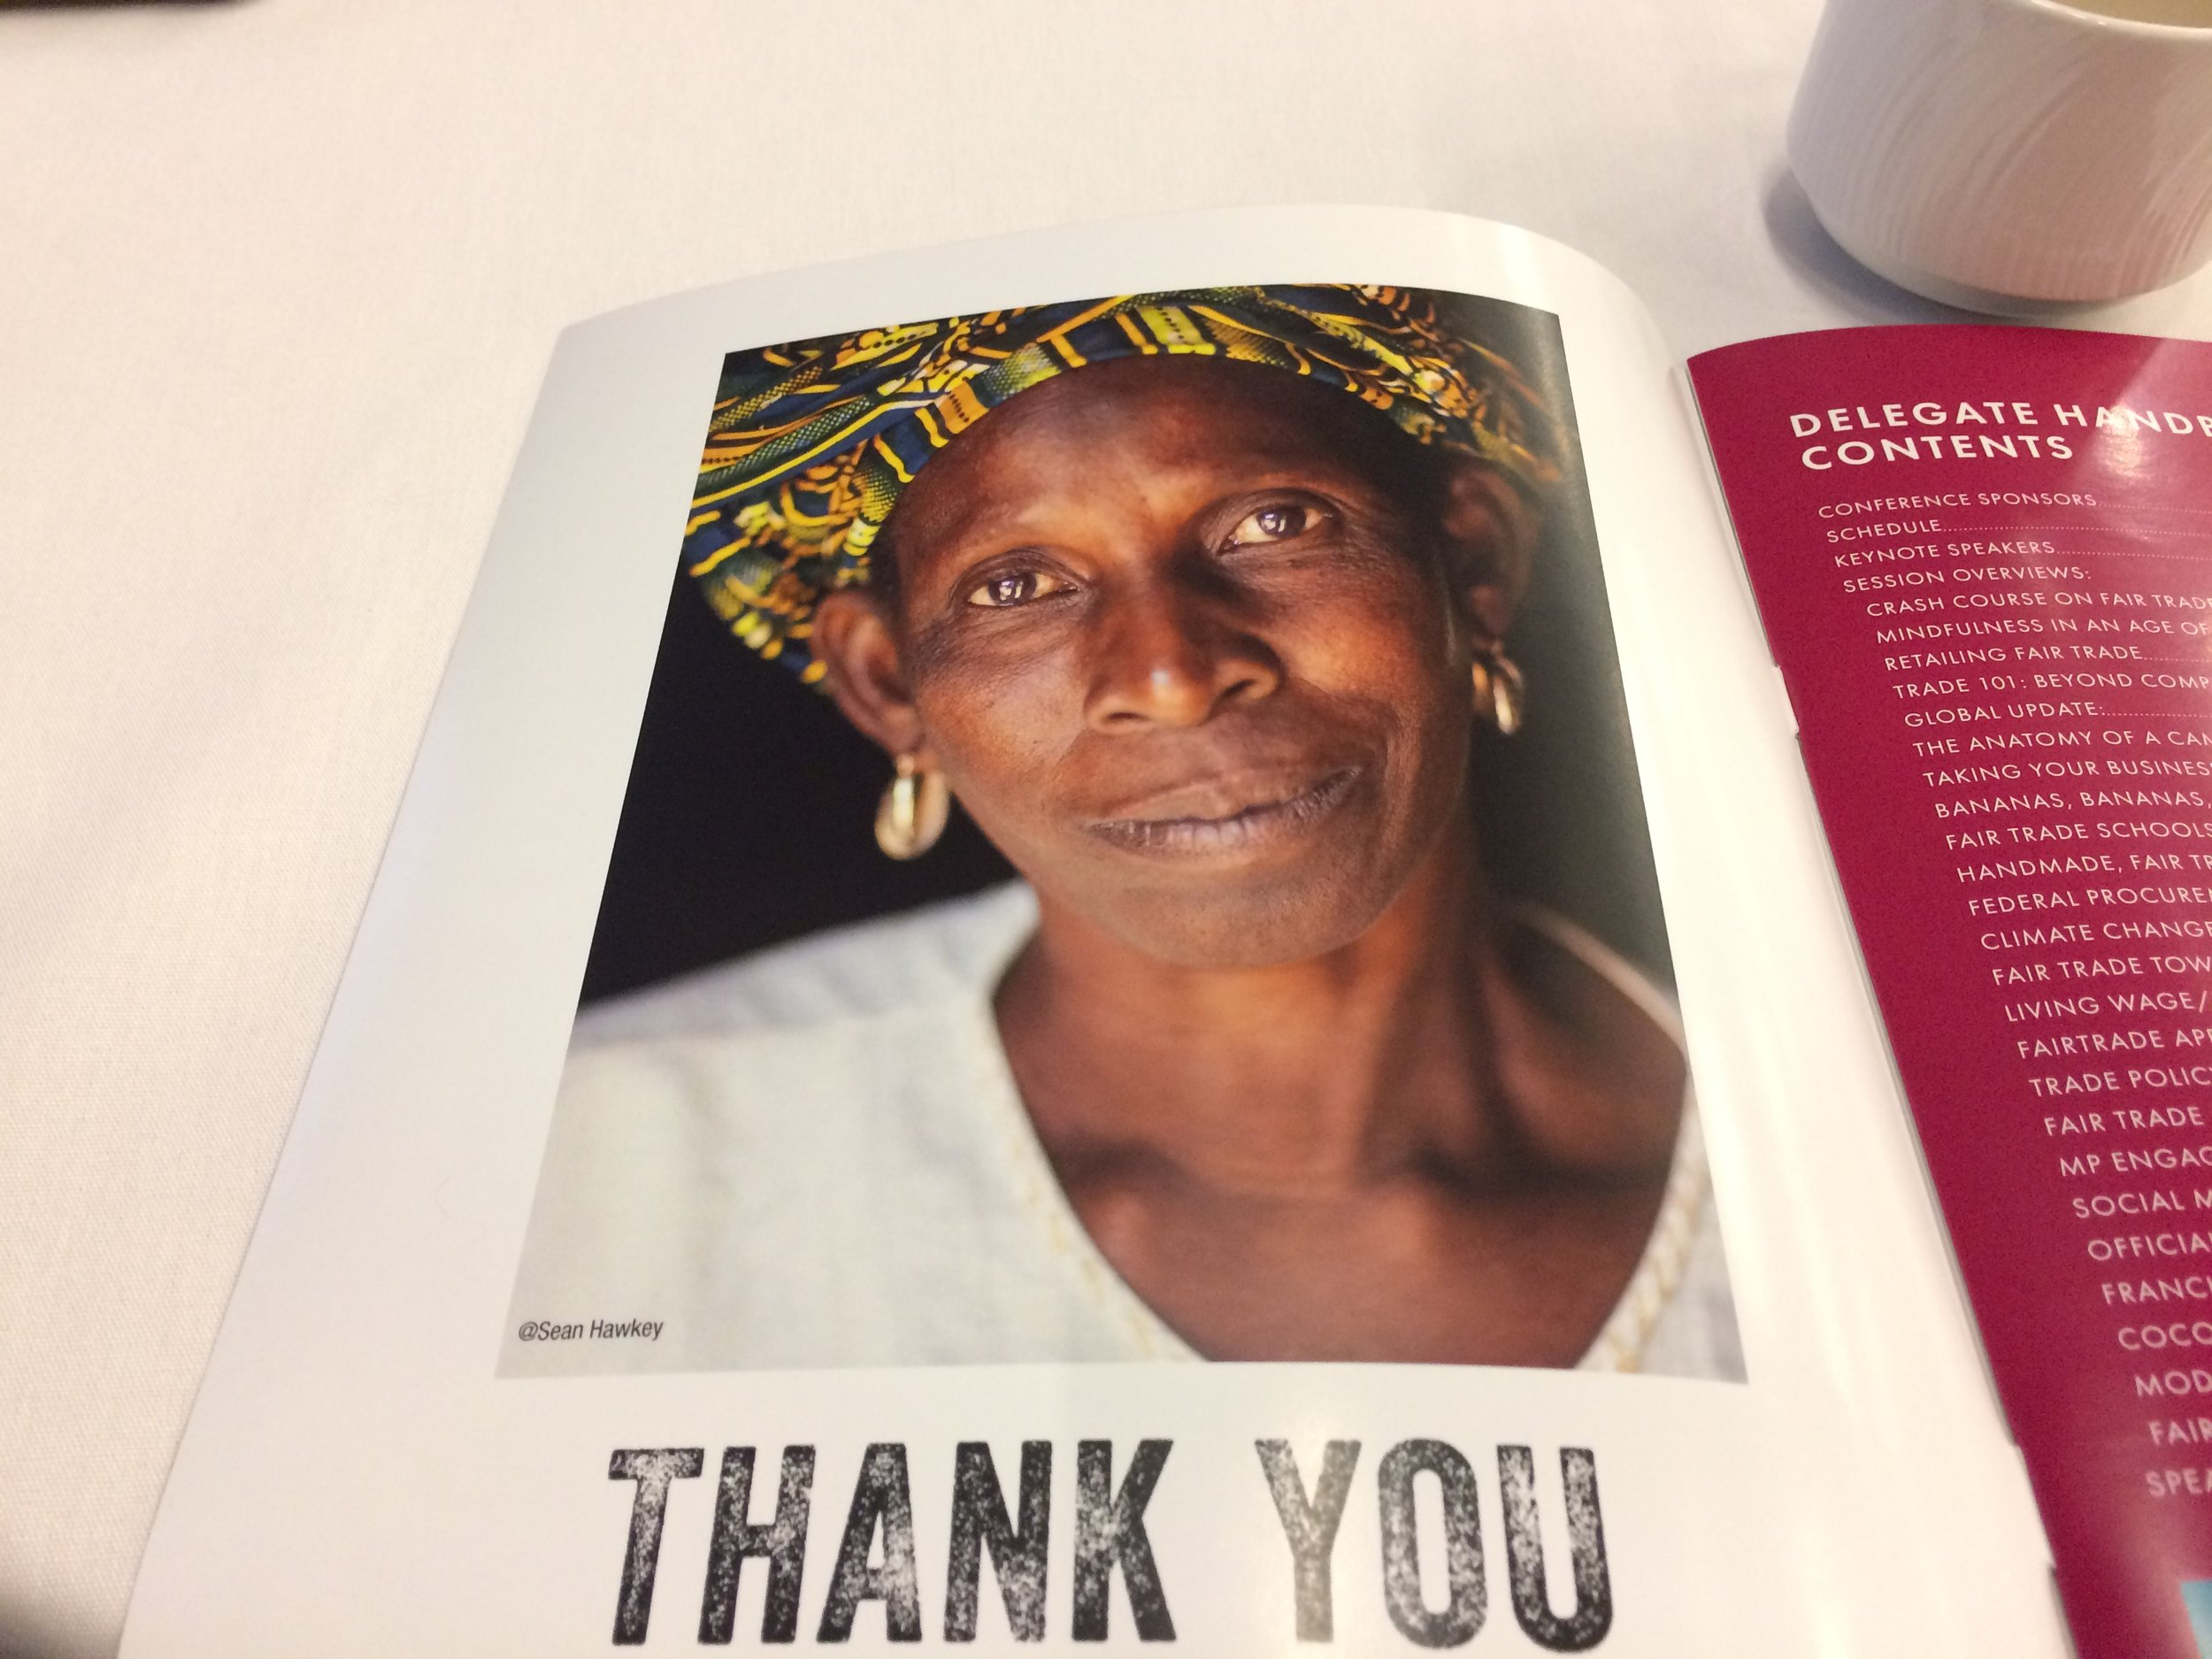 A page in the Conference program acknowledging Divine chocolates and one of their workers in Africa